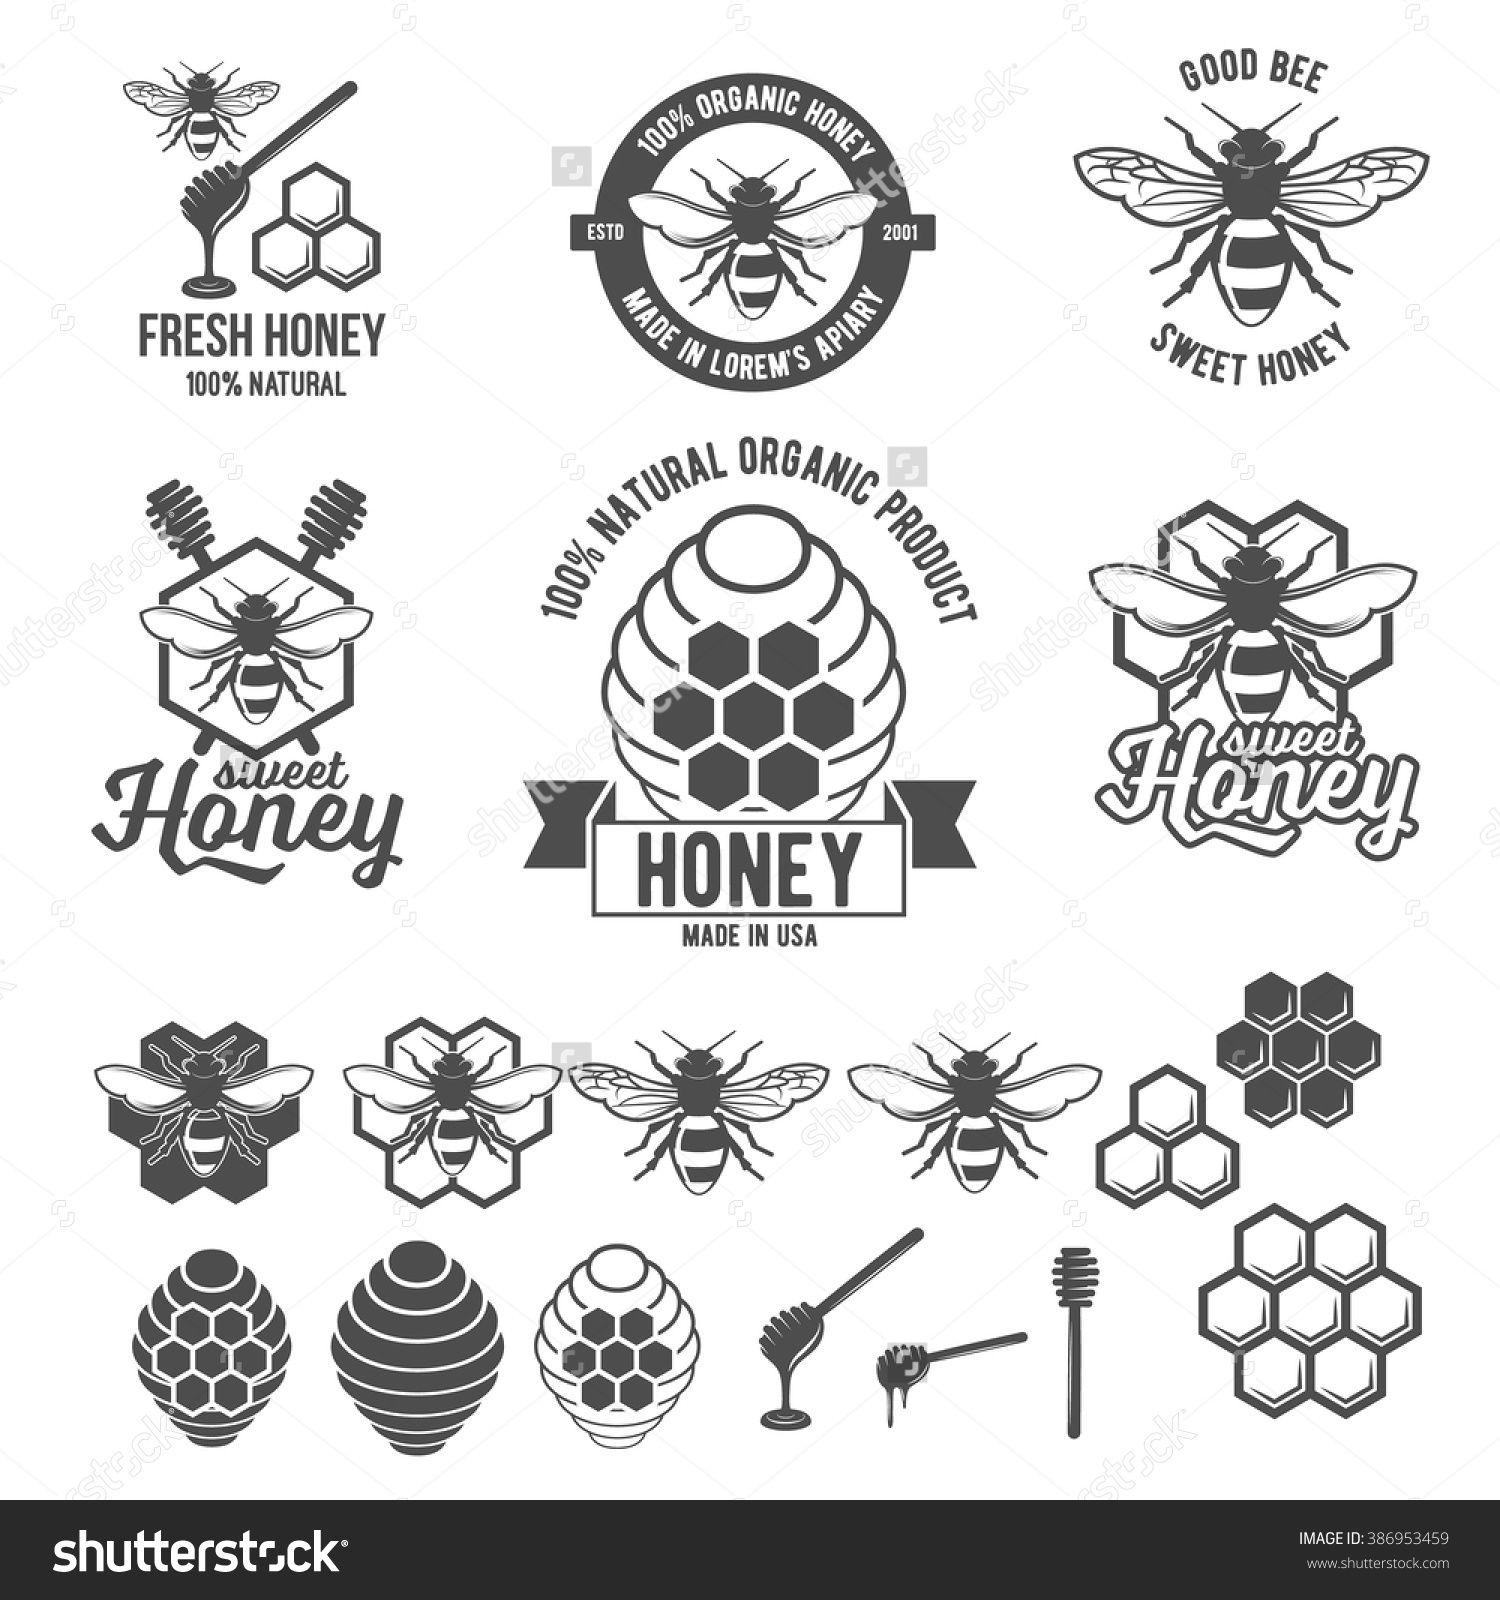 Set of vintage honey labels badges logotypes and design elements set of vintage honey labels badges logotypes and design elements apiary logo template buy this stock vector on shutterstock find other images biocorpaavc